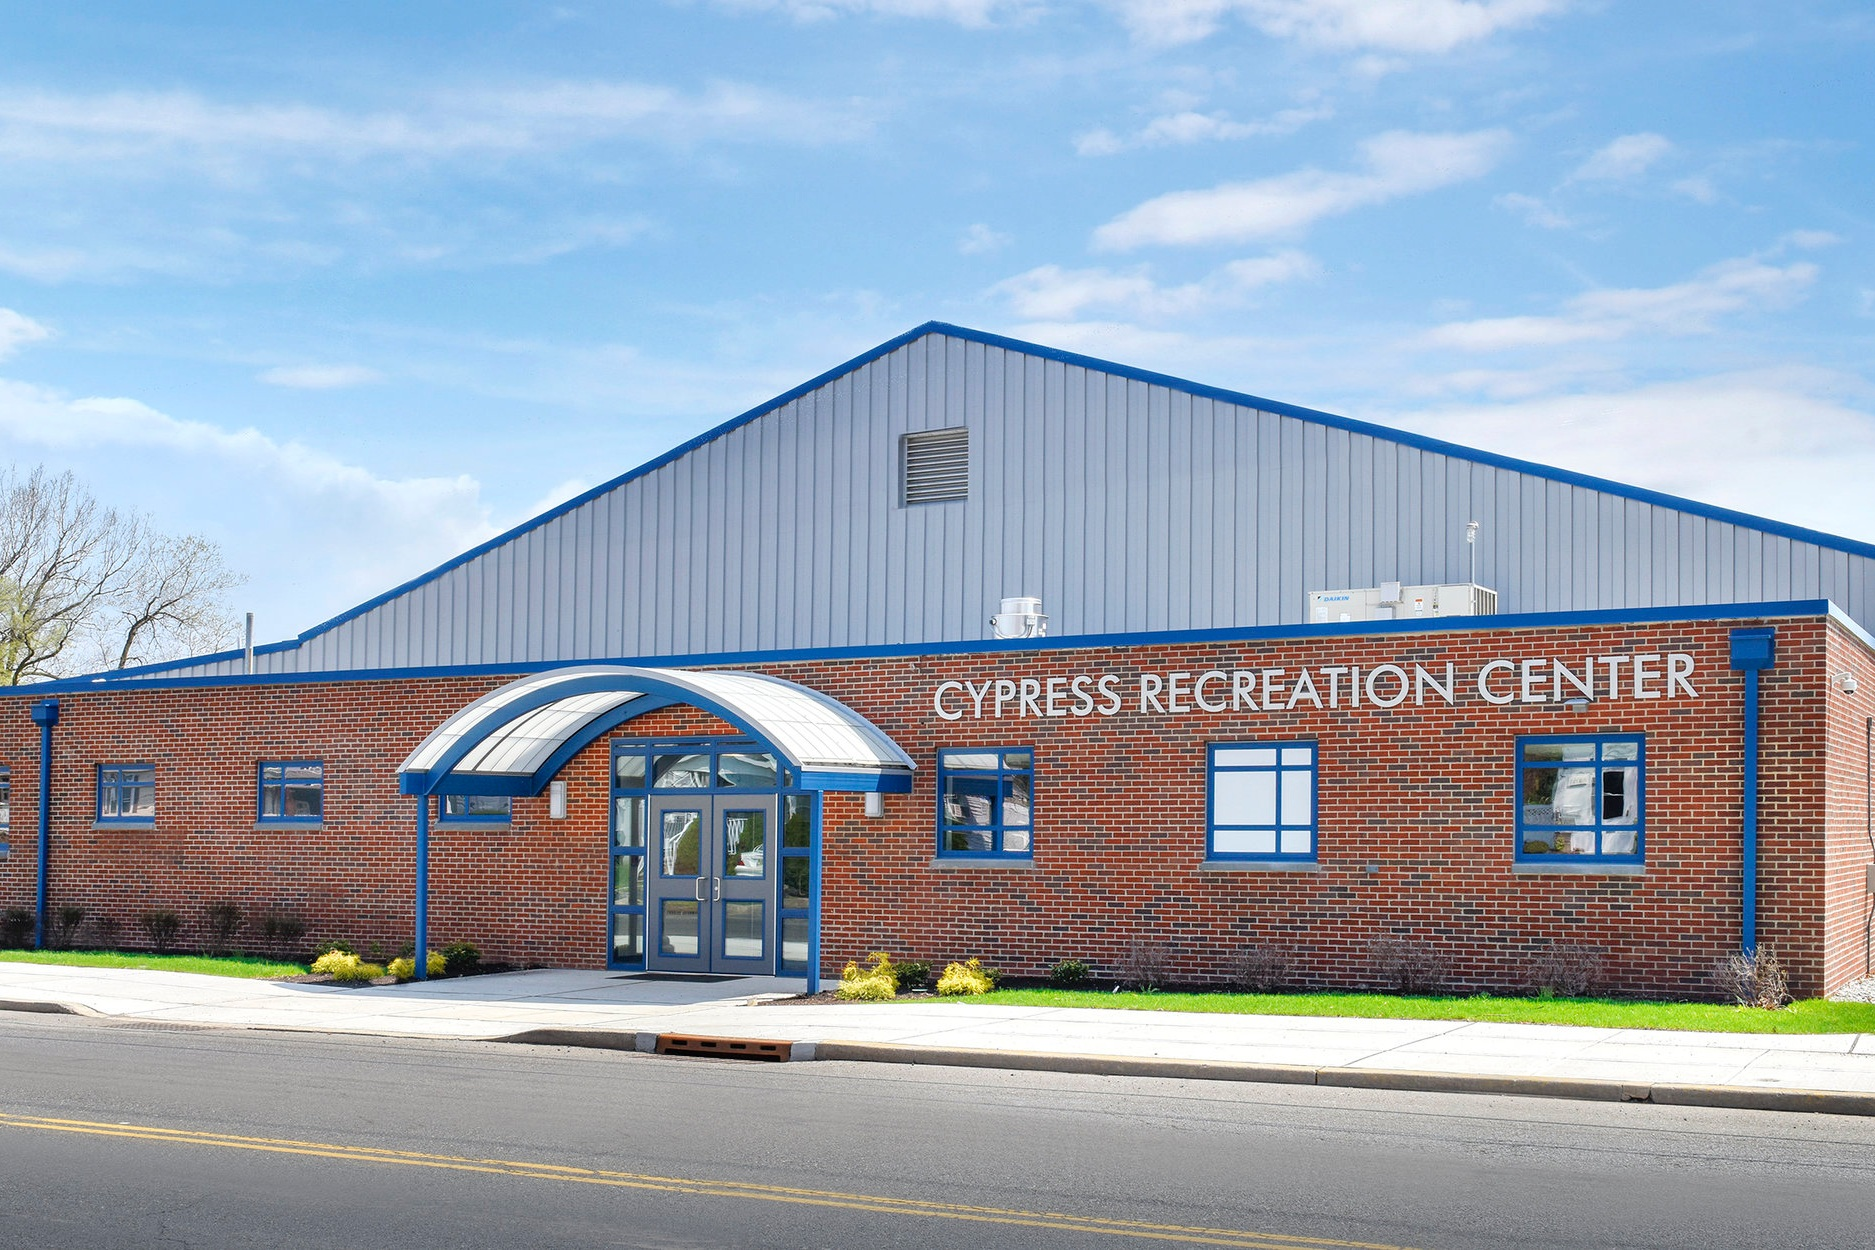 Cypress Recreation Center + Adult Day Care - New Township Recreation Center